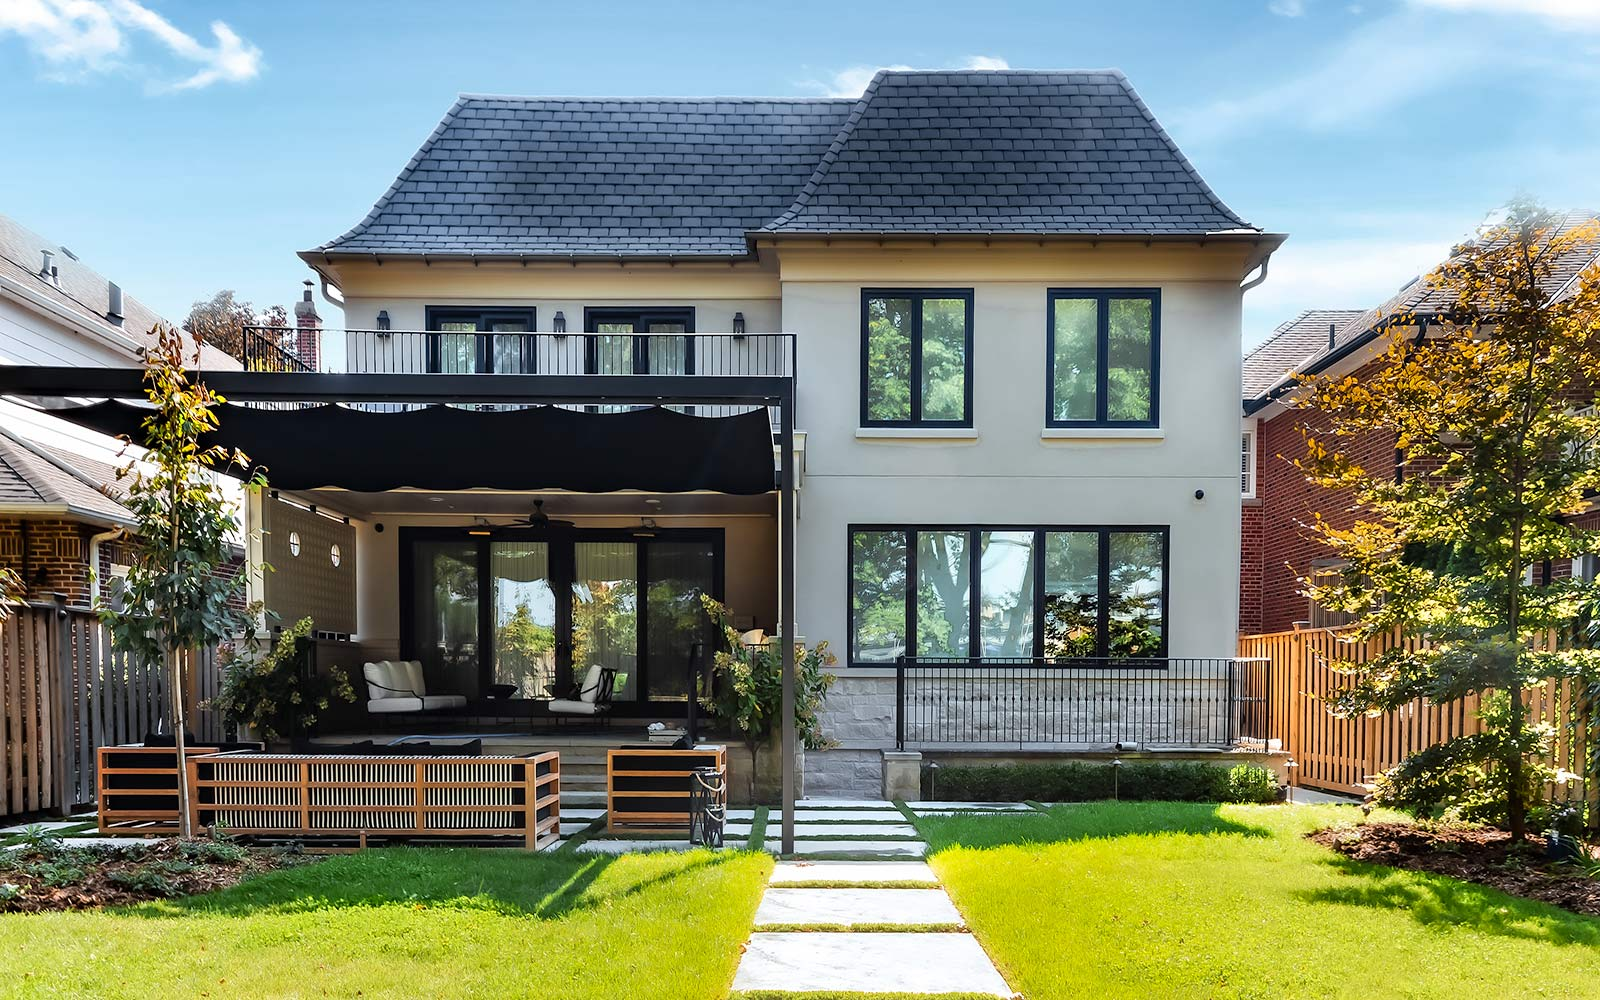 Complete Landscaping Project by Toronto Landscaping Company; Featuring Retractable Pergola, Interlocking, Privacy Fence, Outdoor Fireplace & Outdoor Kitchen.